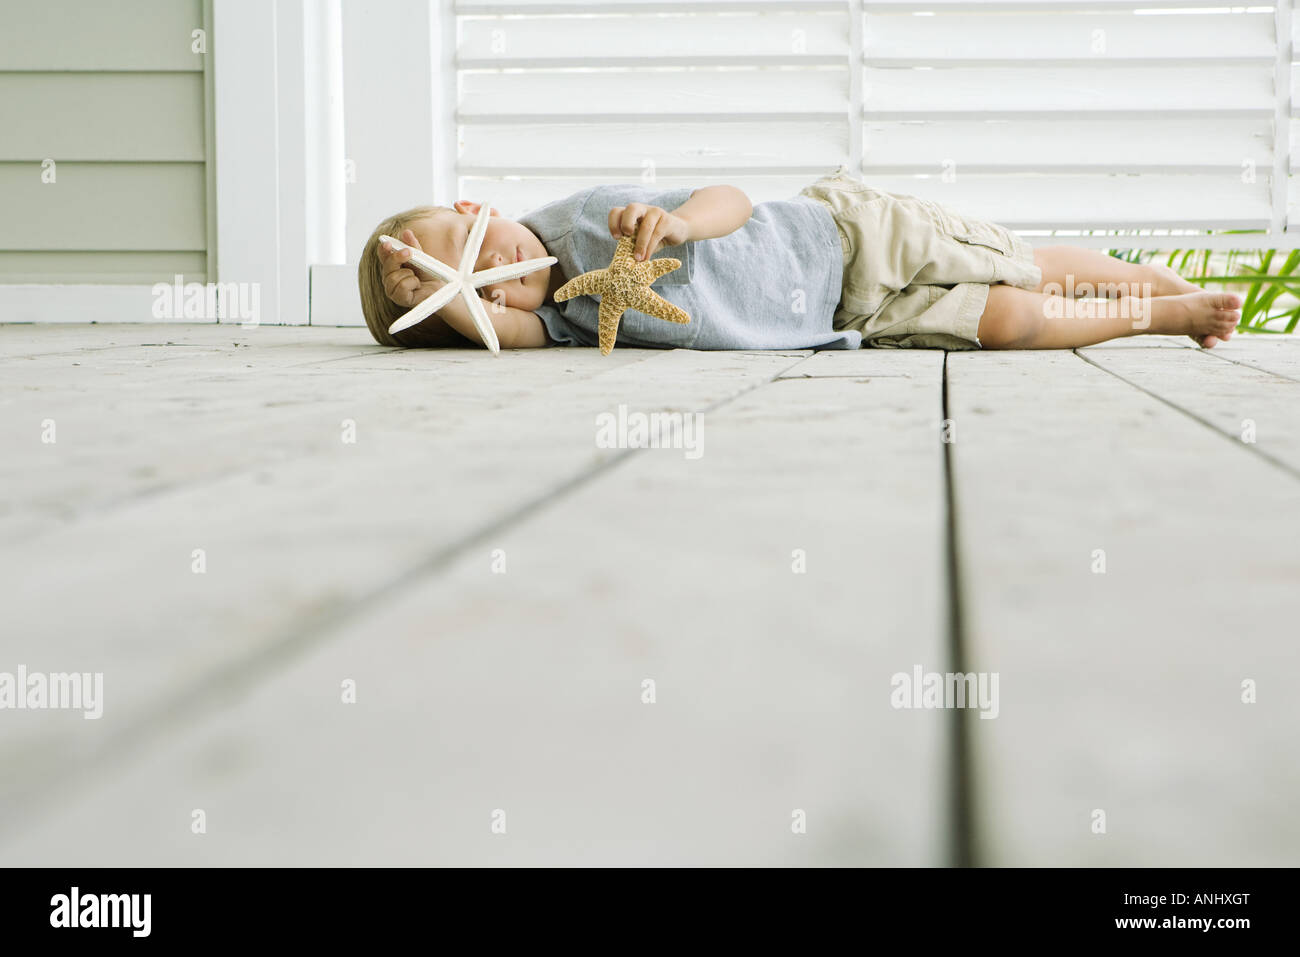 Boy lying on the ground holding two starfish - Stock Image